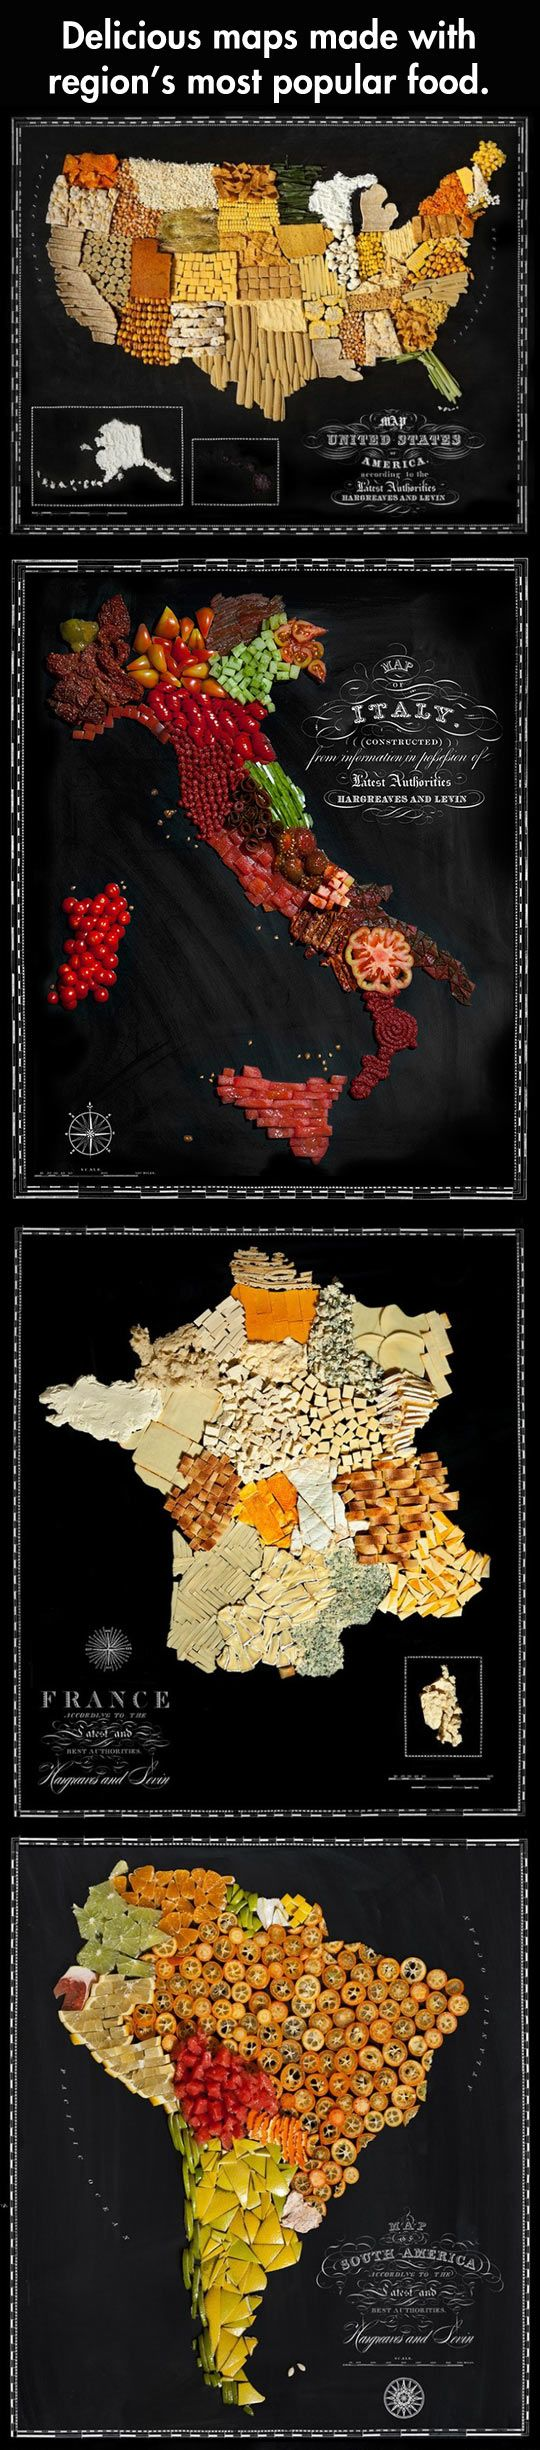 Beautiful Maps of Countries Made Out of